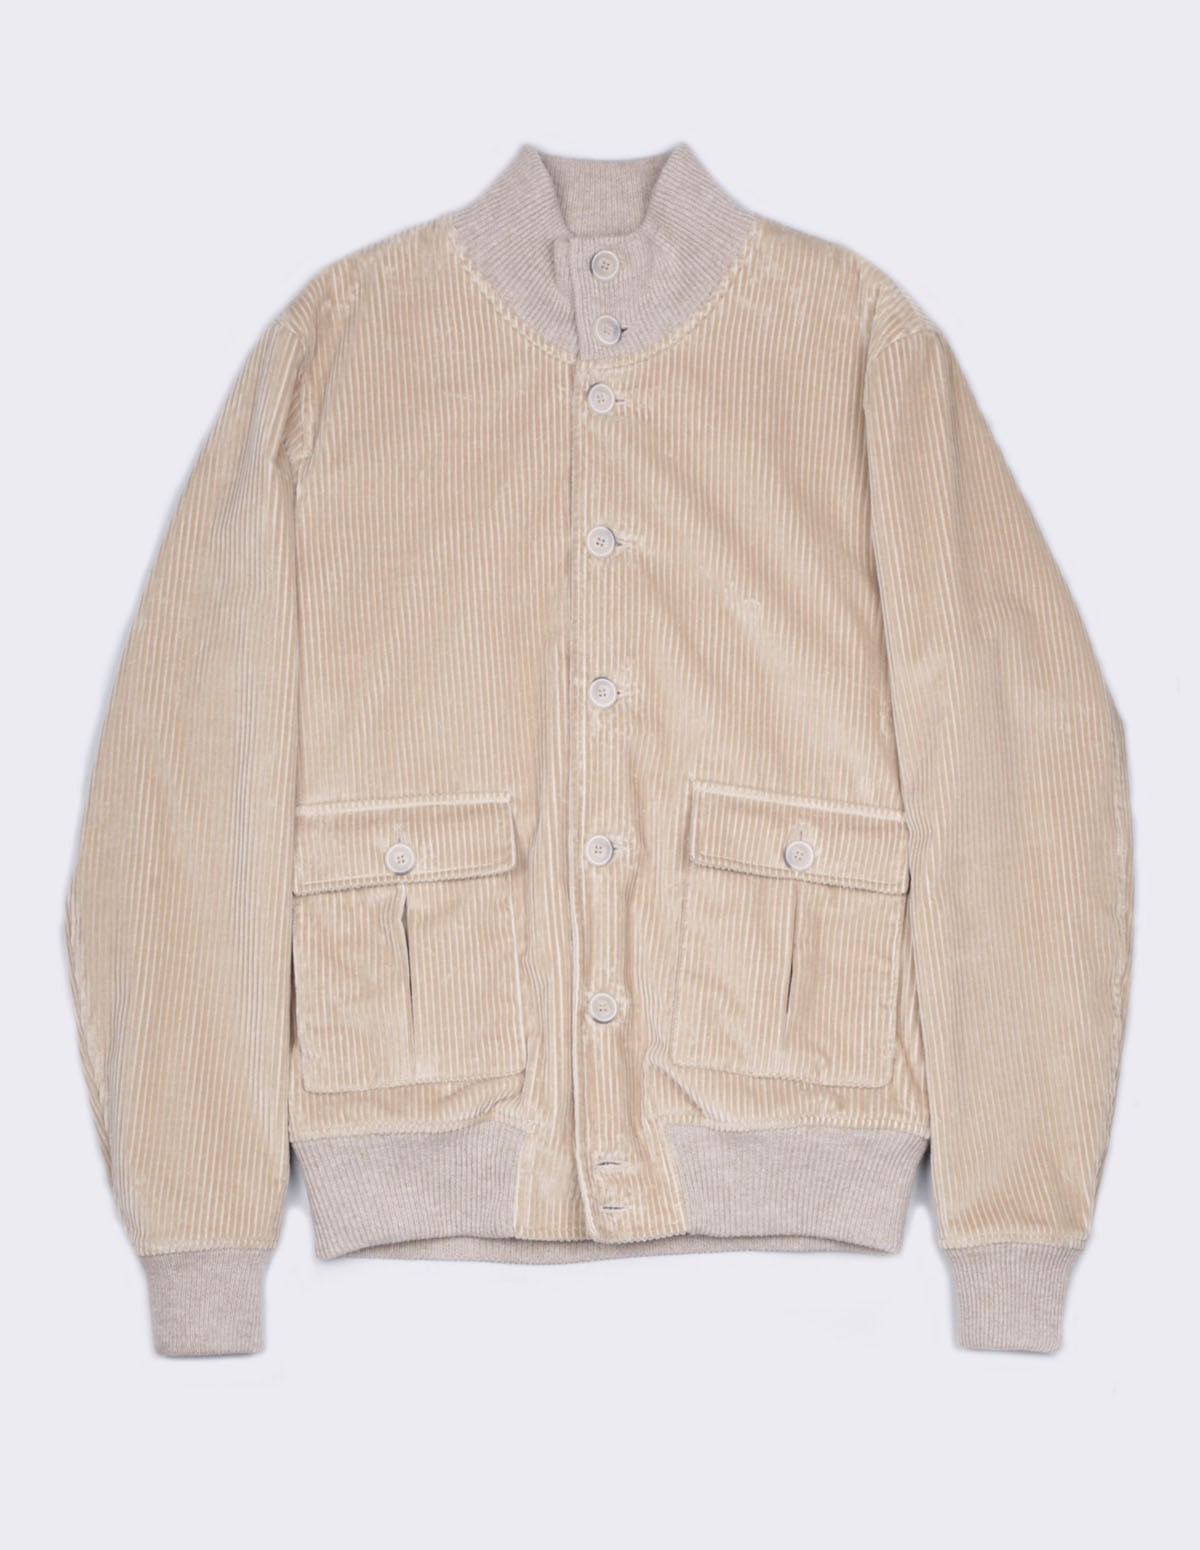 Ft Corduroy Jacket - BEIGE